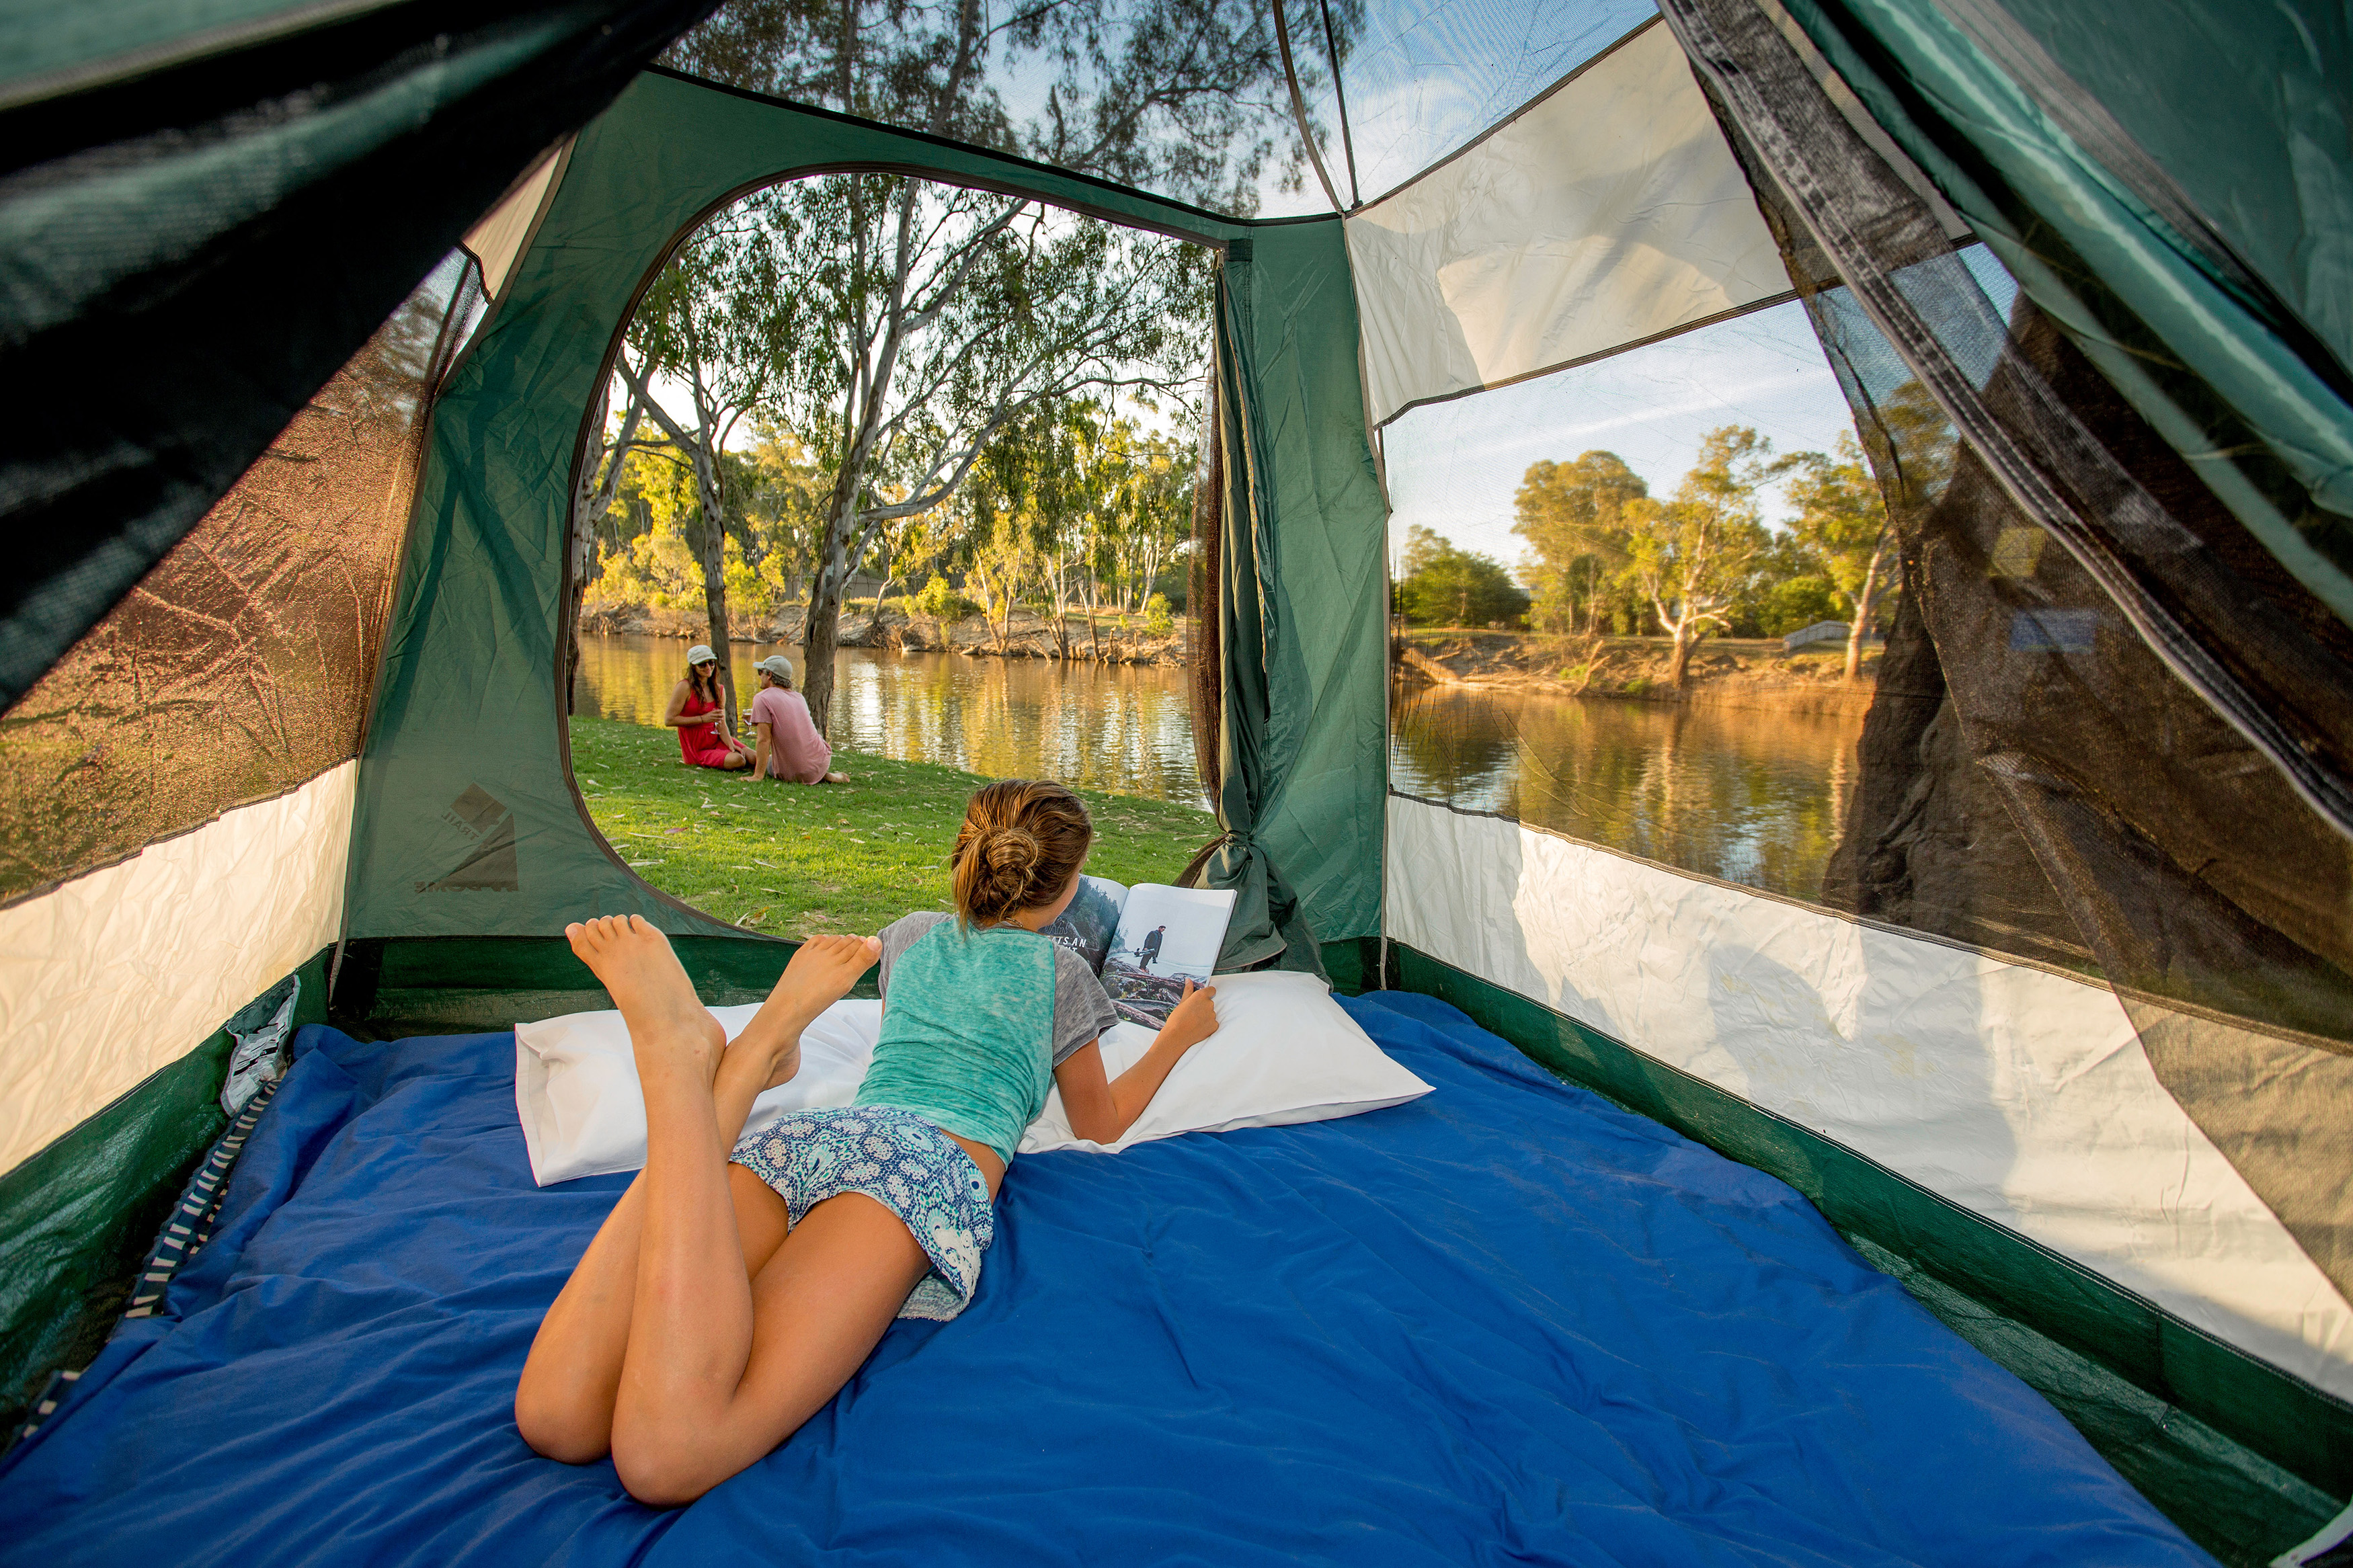 News u0026 Media & More families are choosing NSW for a camping holiday | Destination NSW